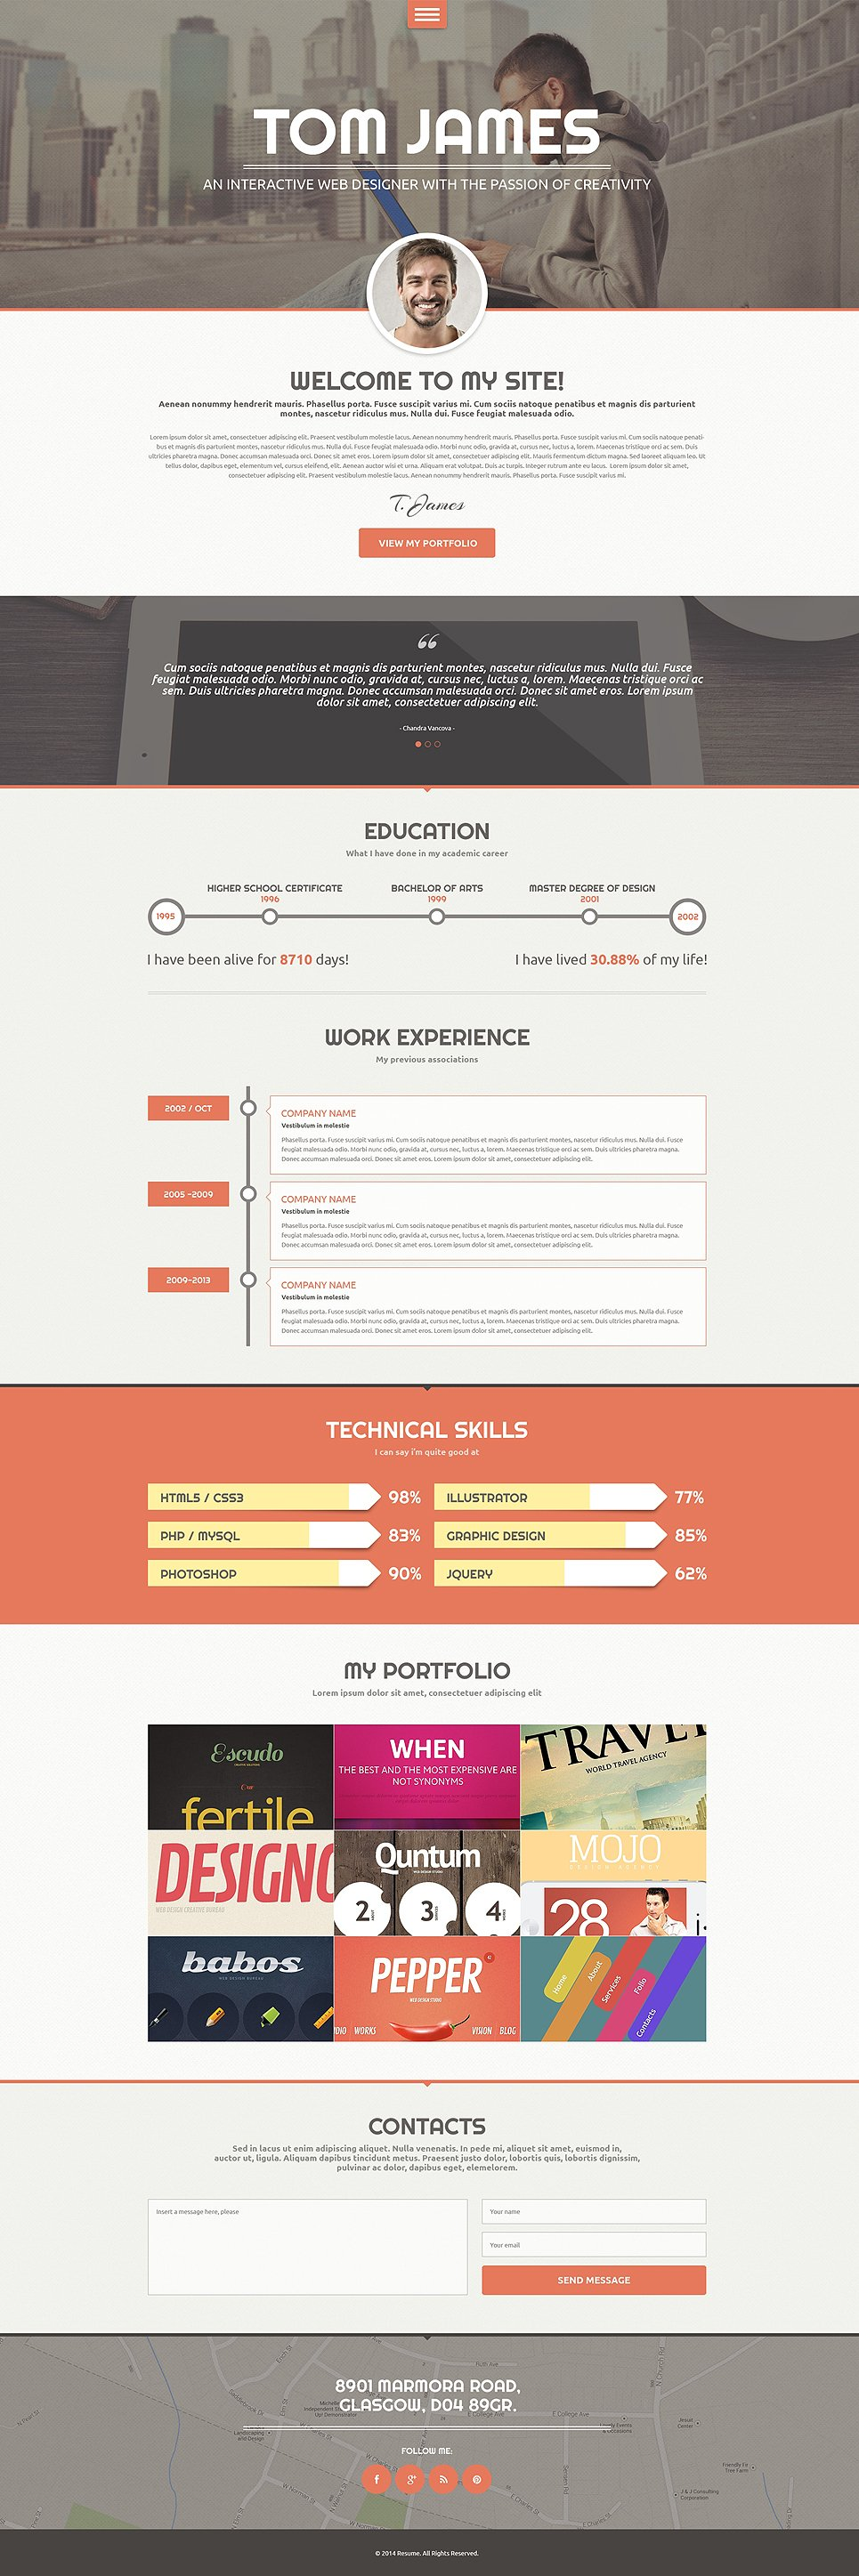 web designer cv wordpress theme 49159